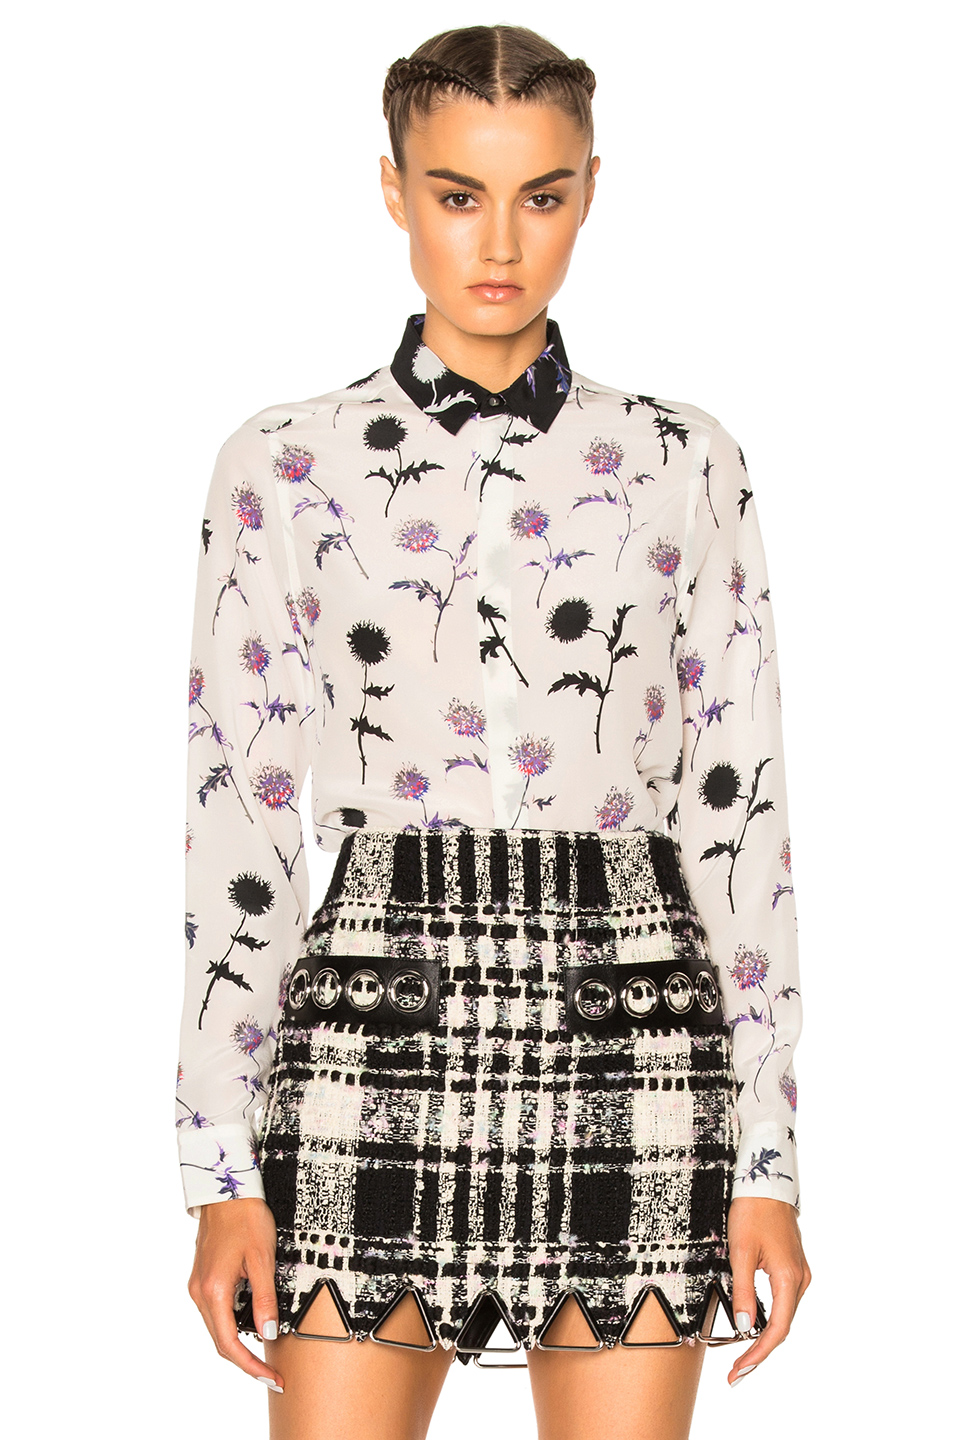 Kenzo Dandelion Long Sleeve Top in White,Floral